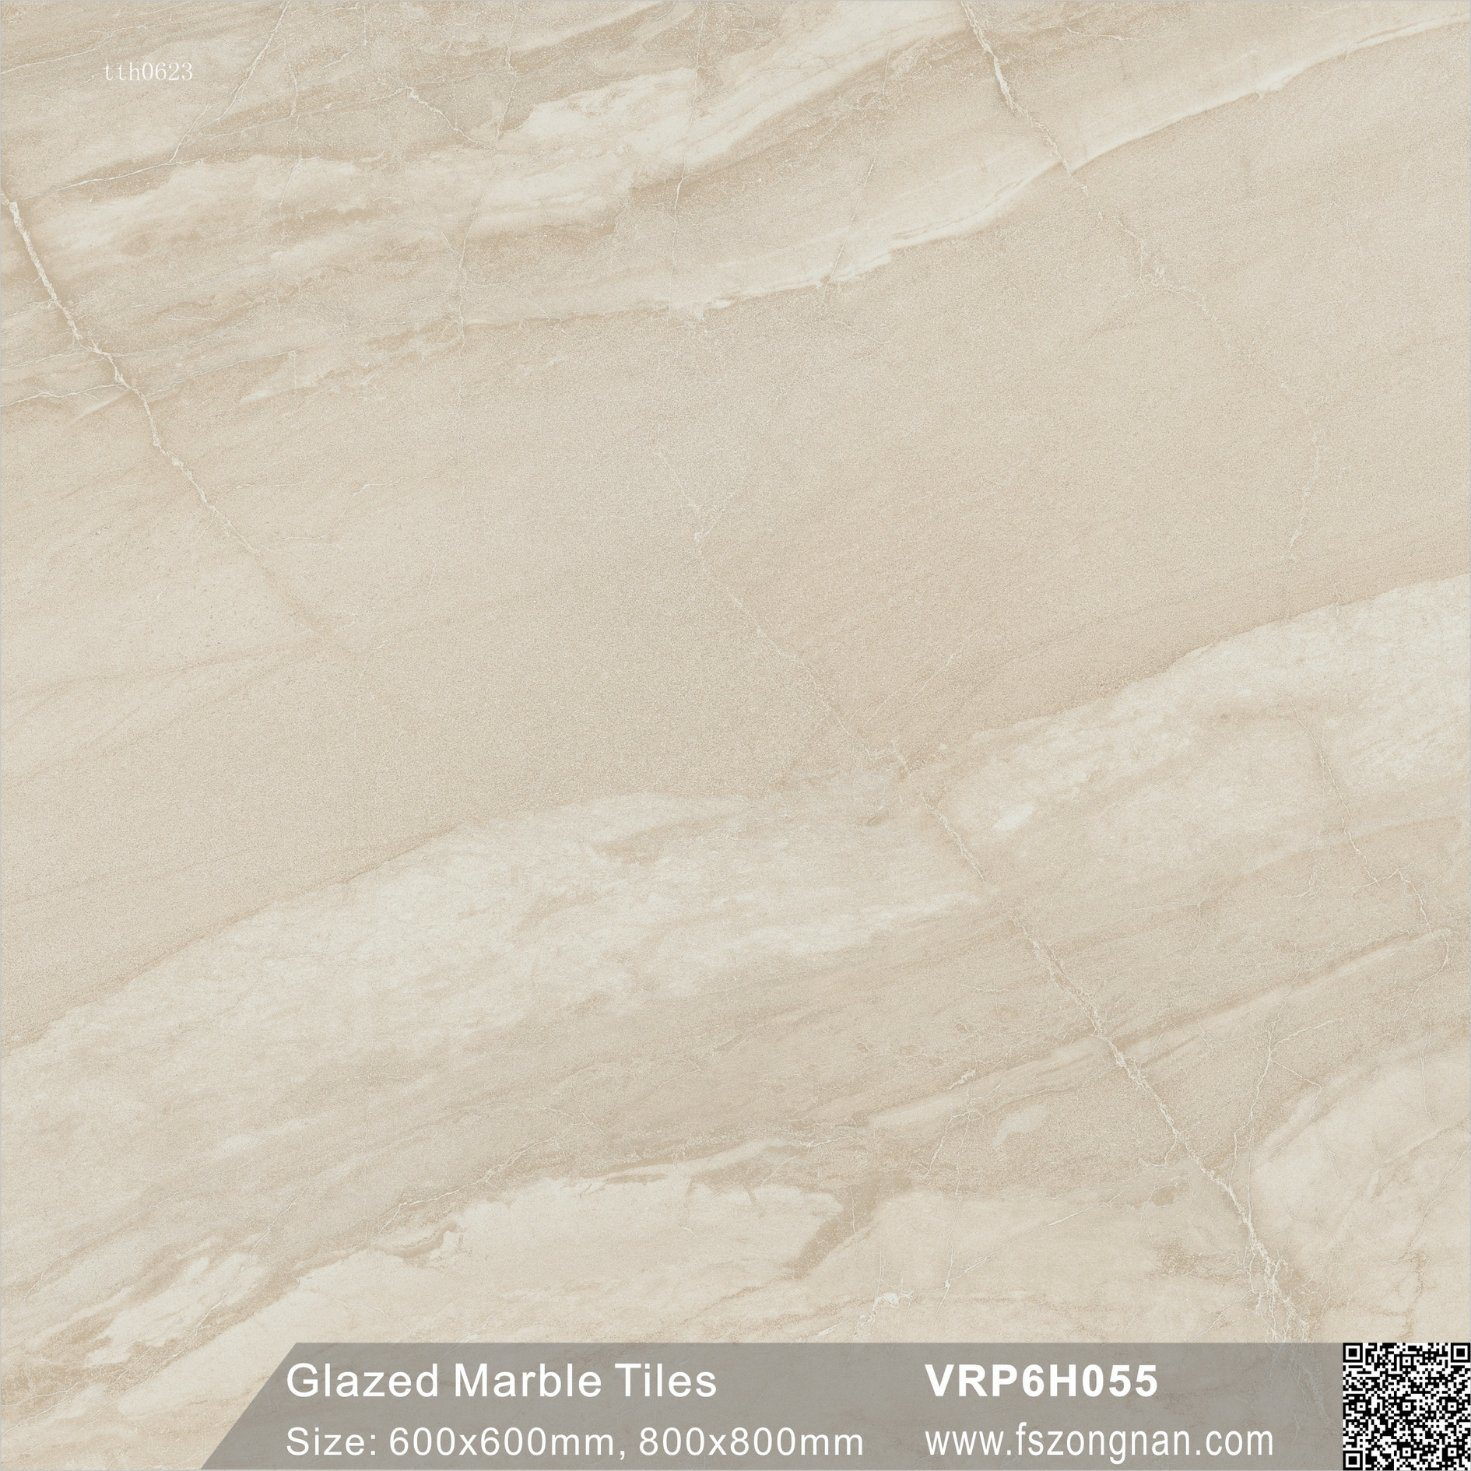 China Foshan Ivory Glazed Marble Polished Porcelain Floor Tile Vrp6h055 600x600mm